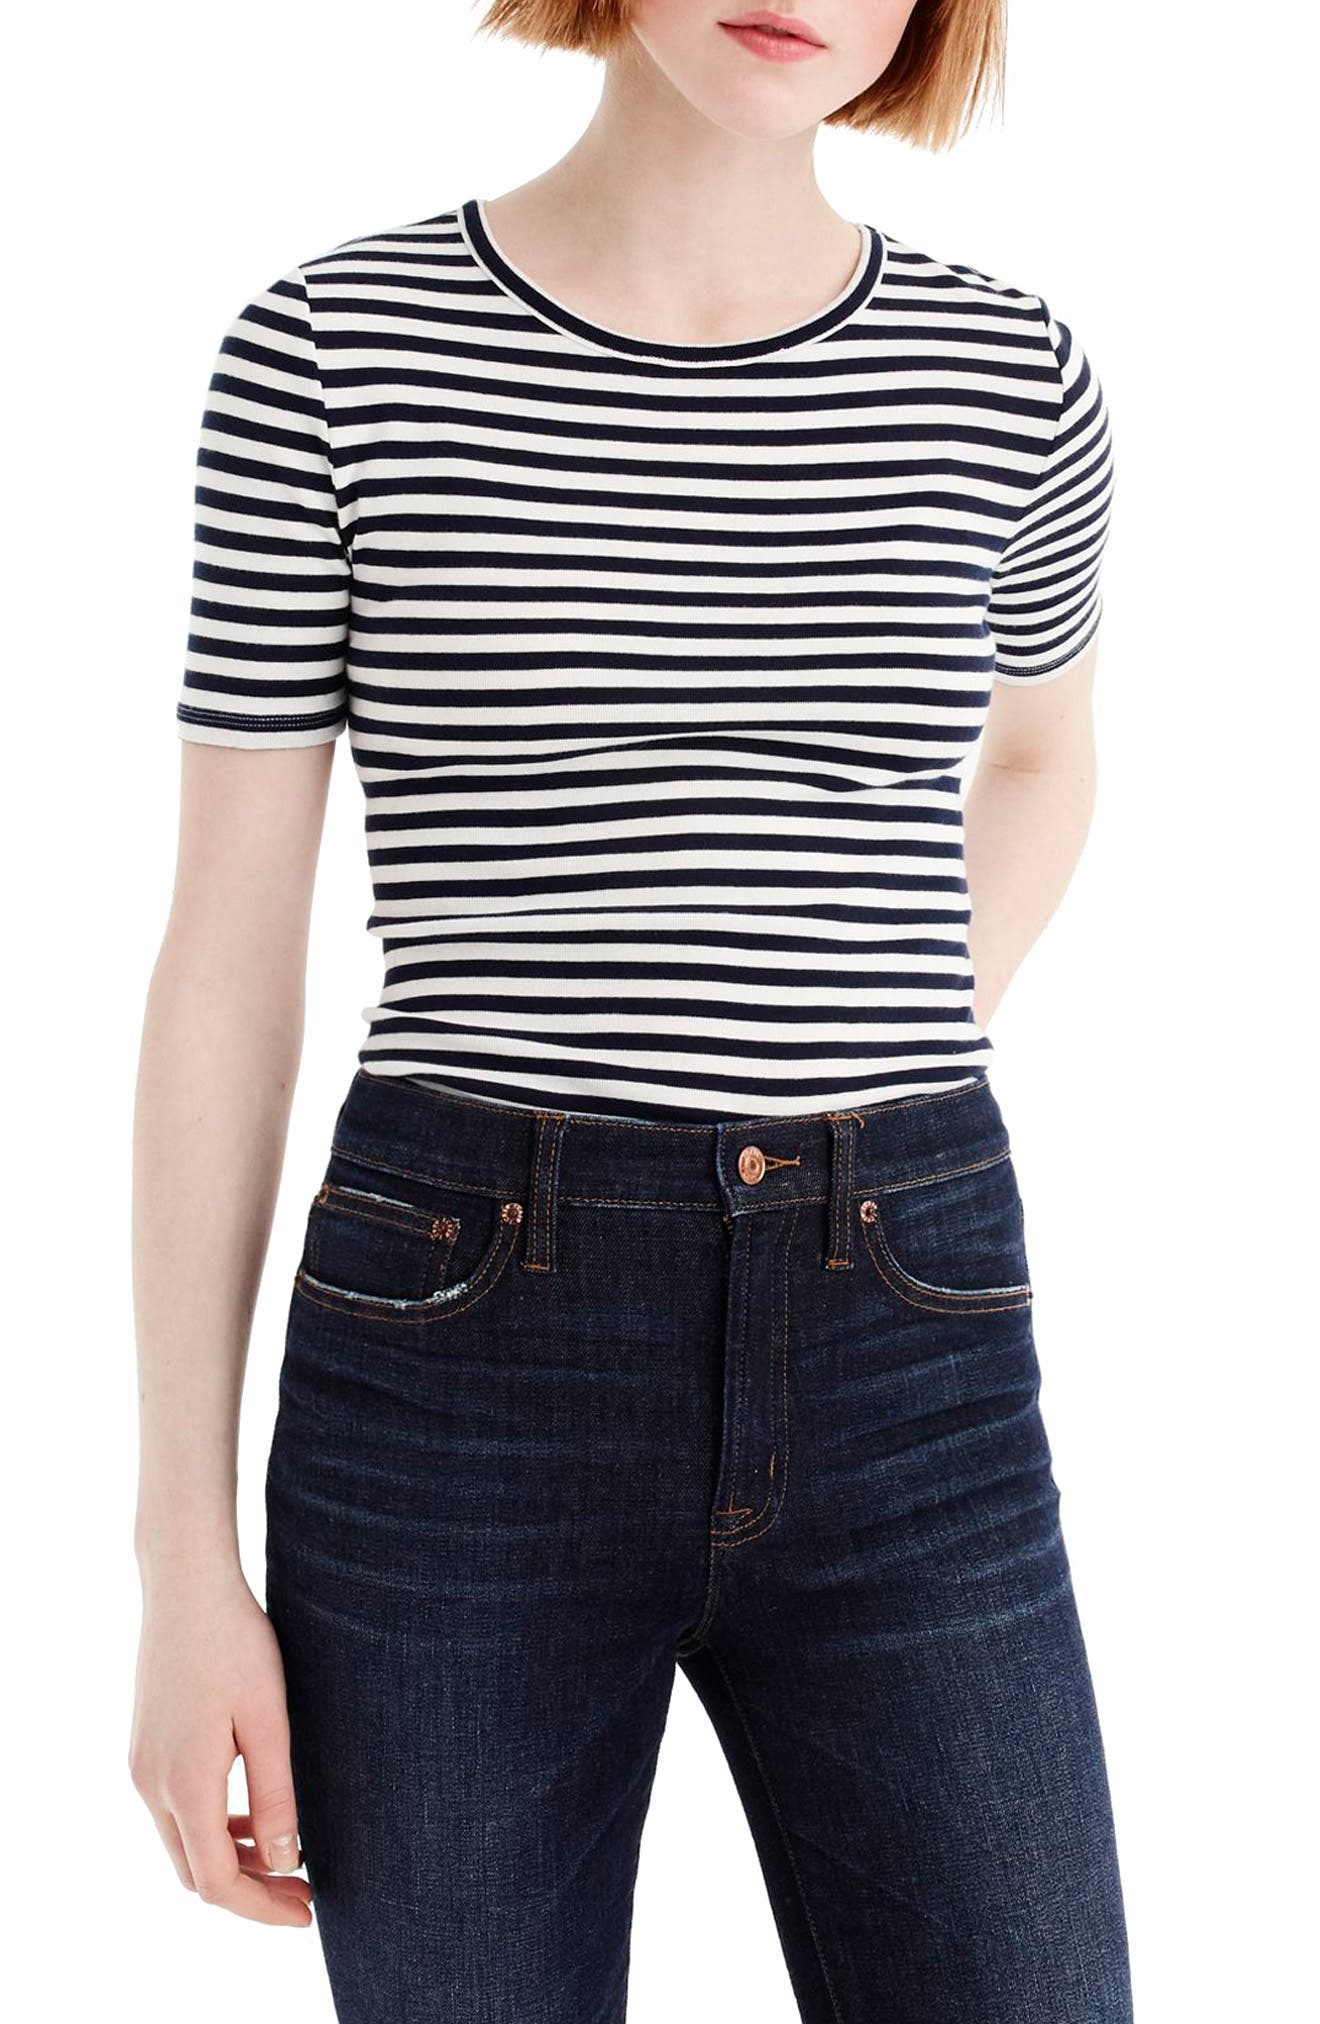 J.Crew New Perfect Fit T-Shirt,                         Main,                         color, Navy/ Ivory